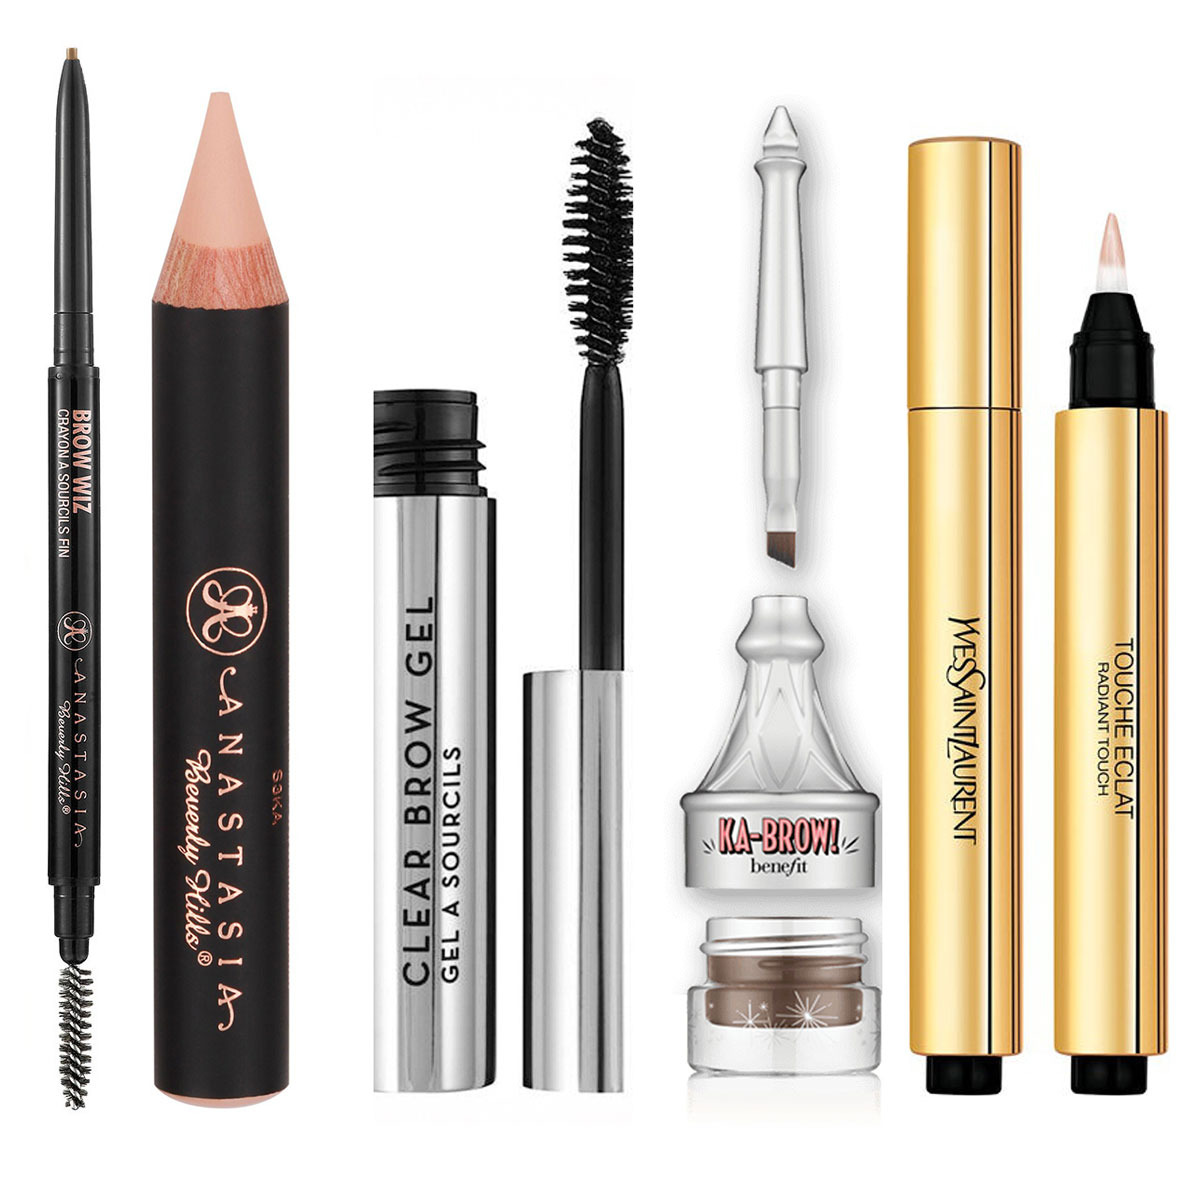 creion-pentru-sprancene-anastasia-beverly-hills-brow-wiz-touch-eclat-ysl-ka-brow-benefit_final